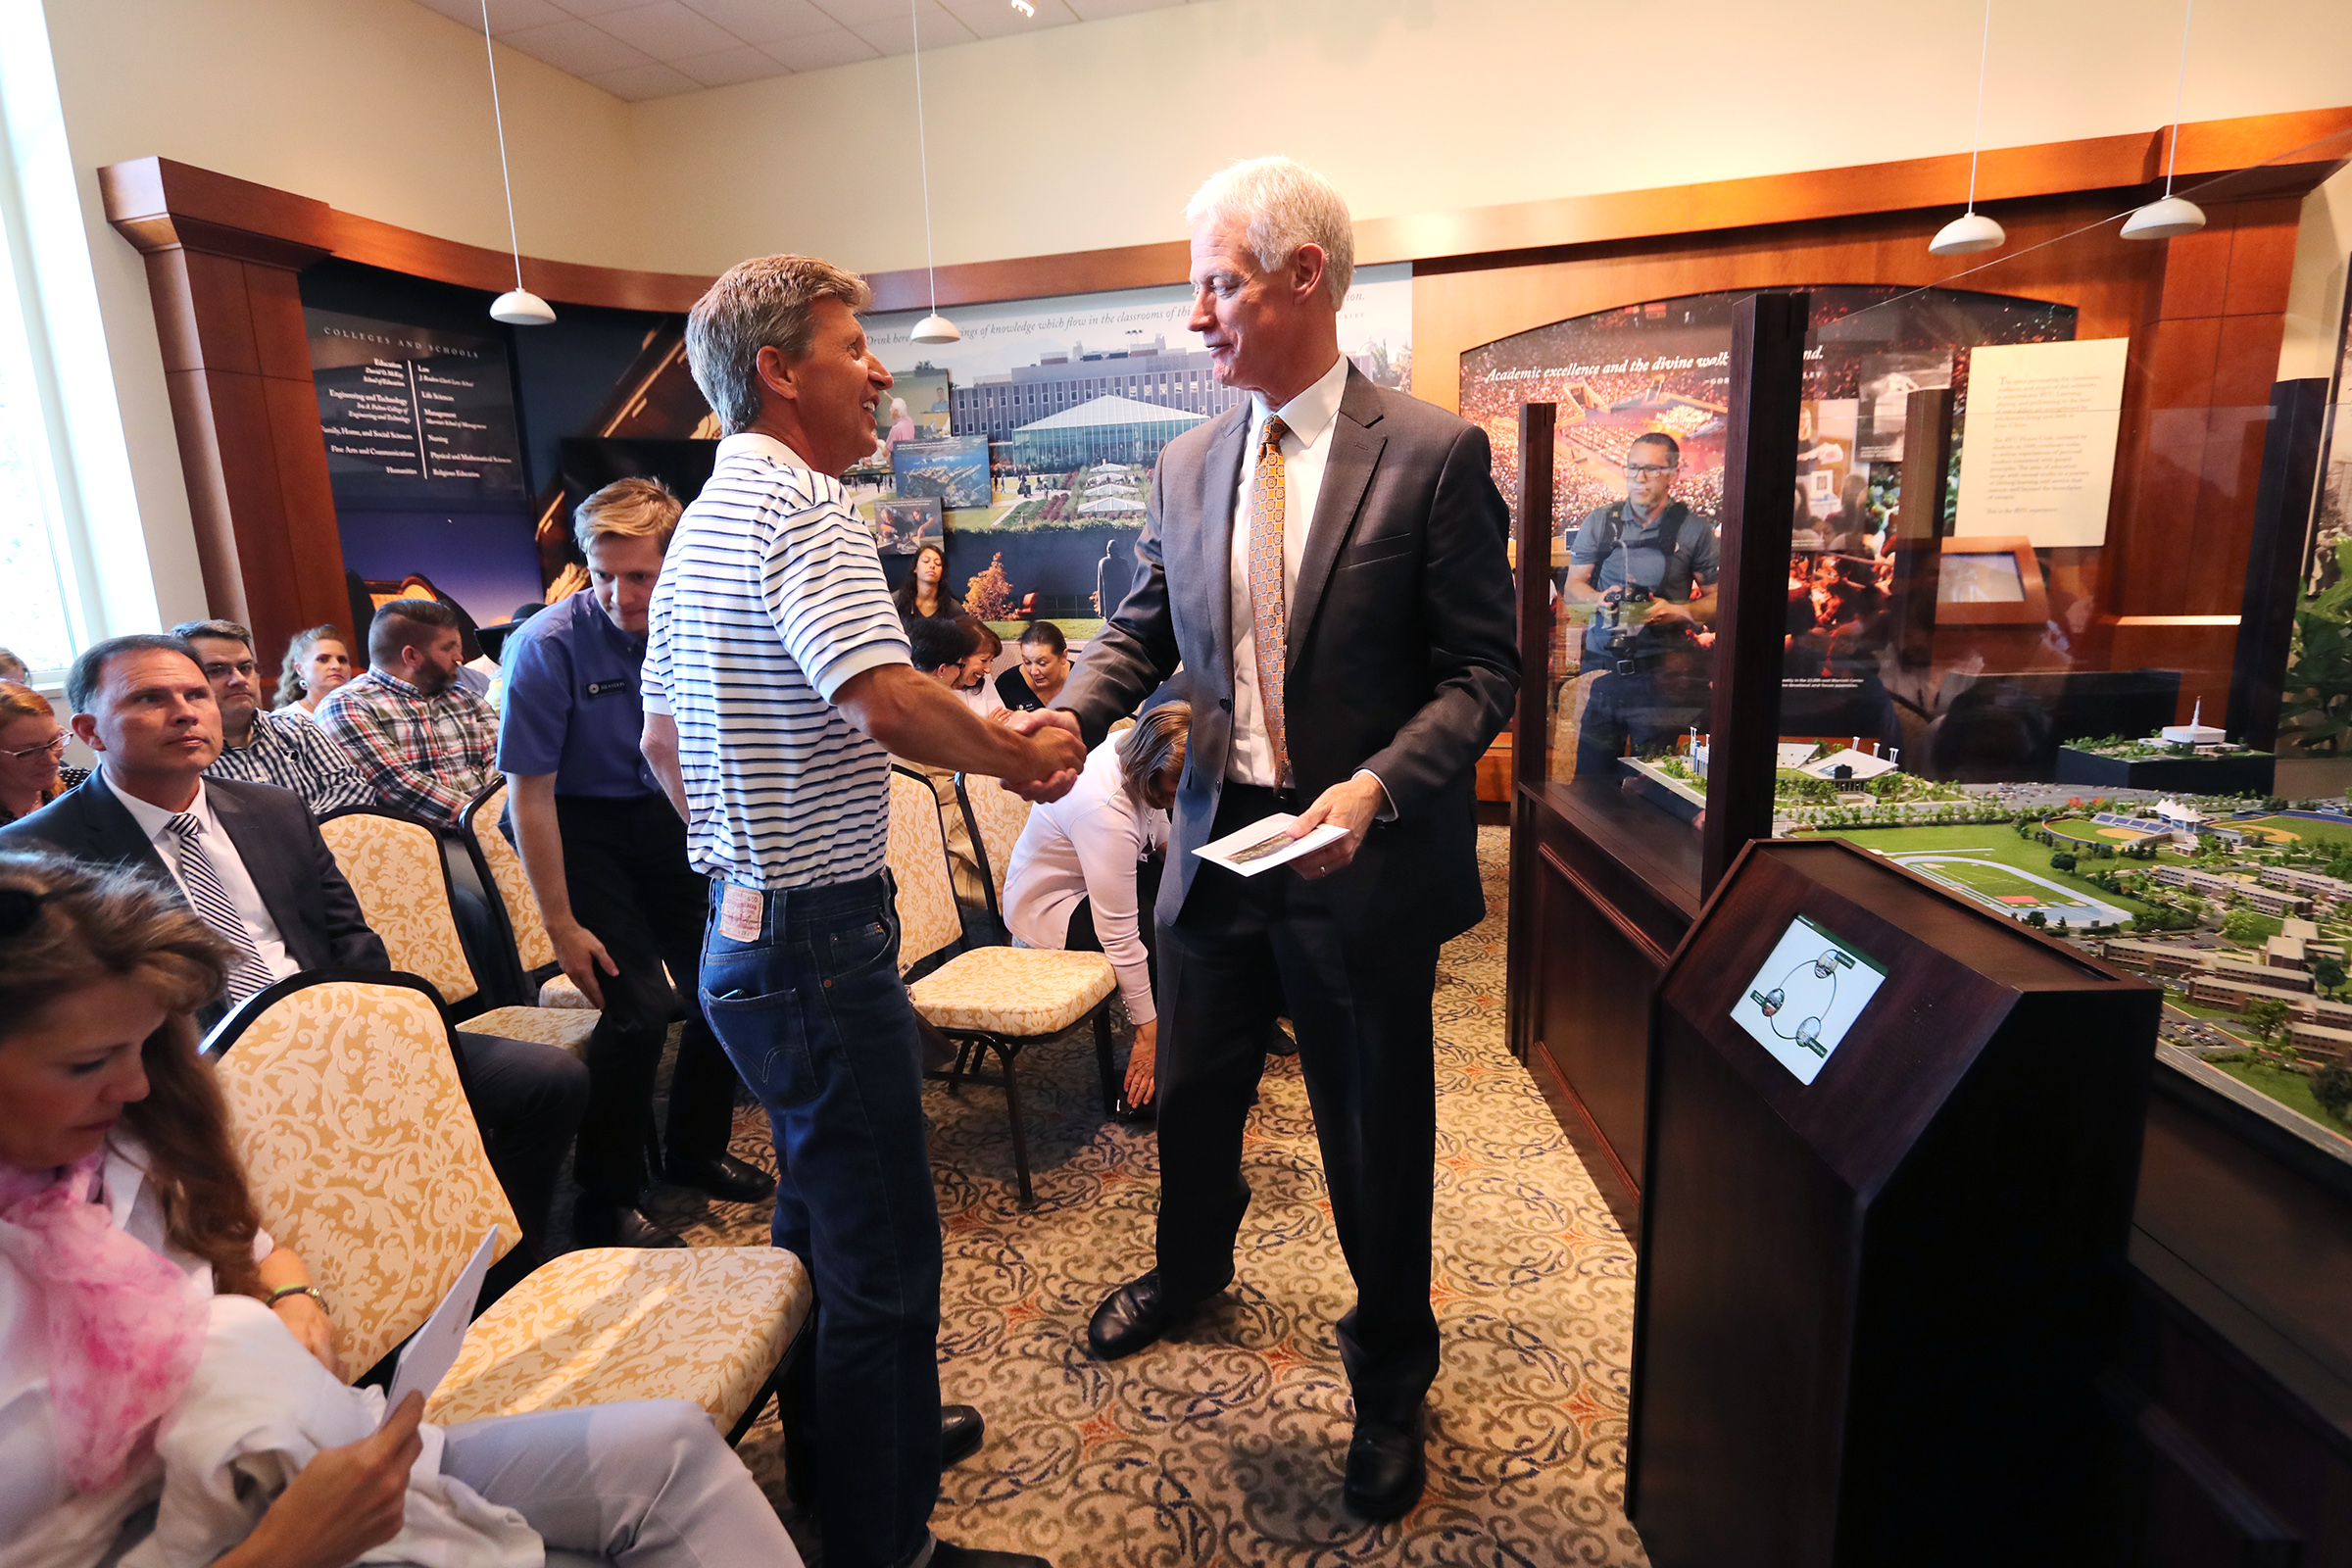 John L. Sorensen and BYU President Kevin J Worthen shake hands as unveils a highly-detailed campus diorama on Tuesday, July 2, 2019.